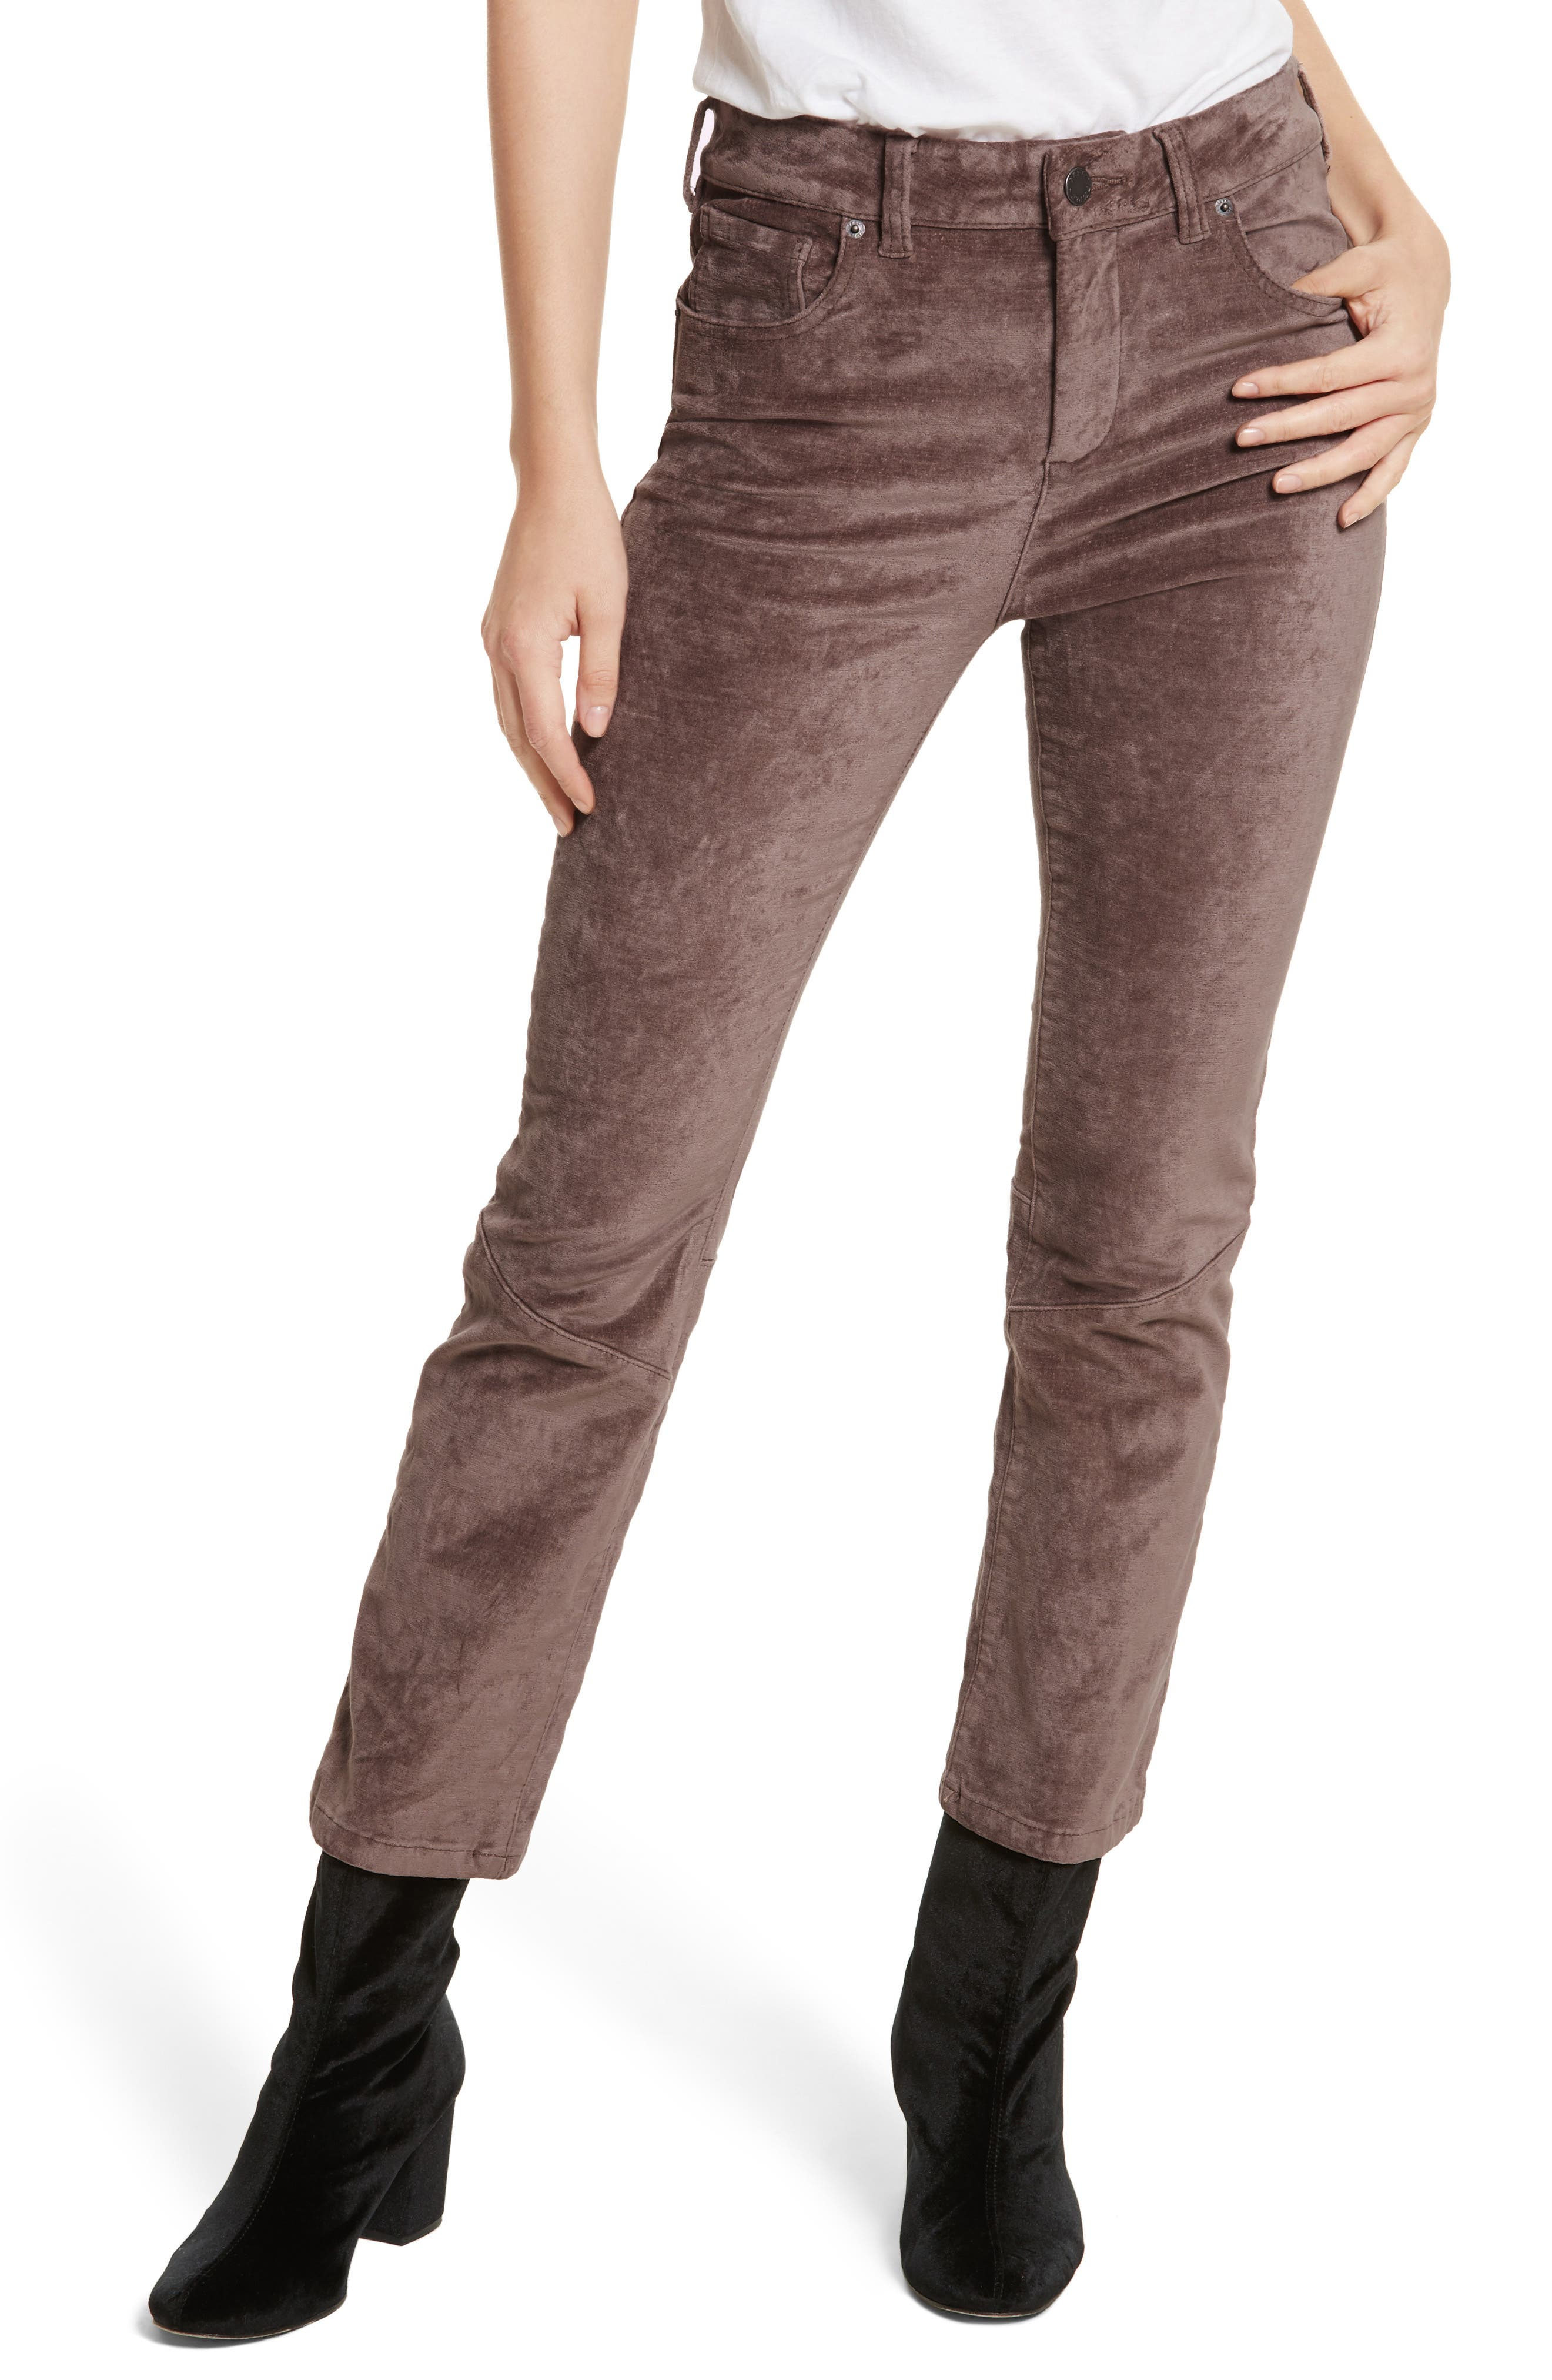 Velvet Crop Bootcut Pants,                             Main thumbnail 1, color,                             230